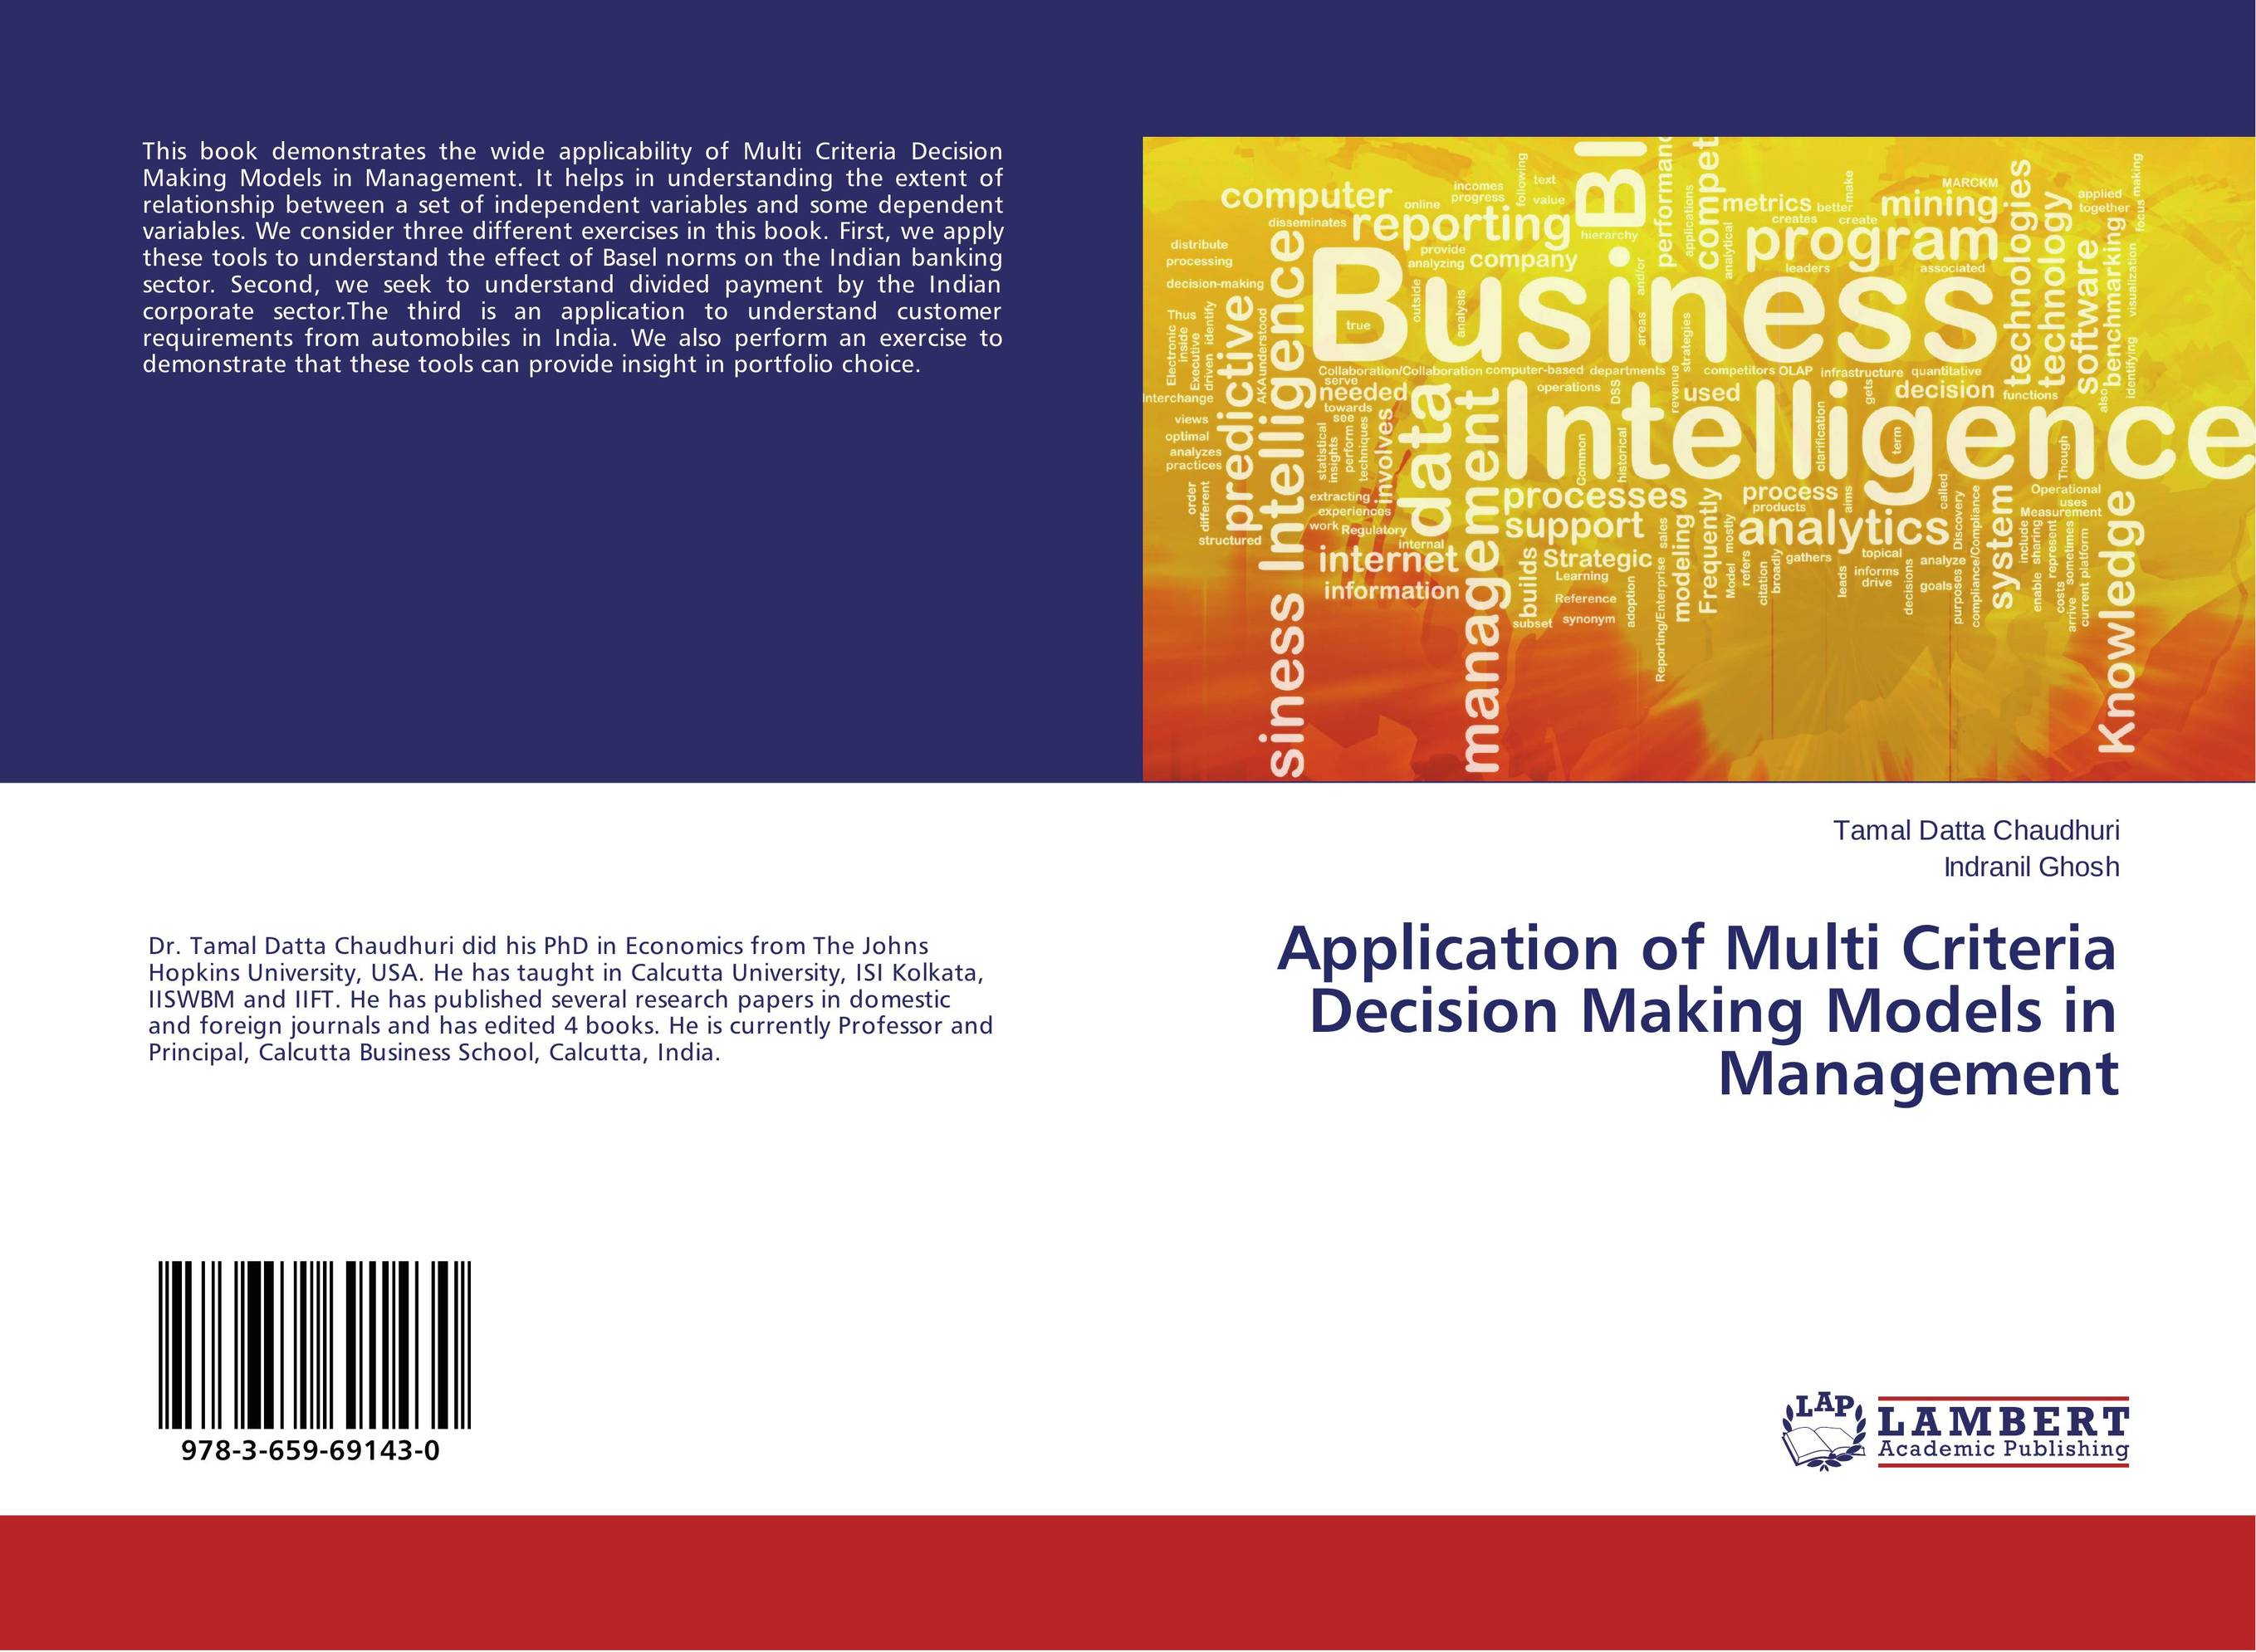 Application of Multi Criteria Decision Making Models in Management corporate real estate management in tanzania